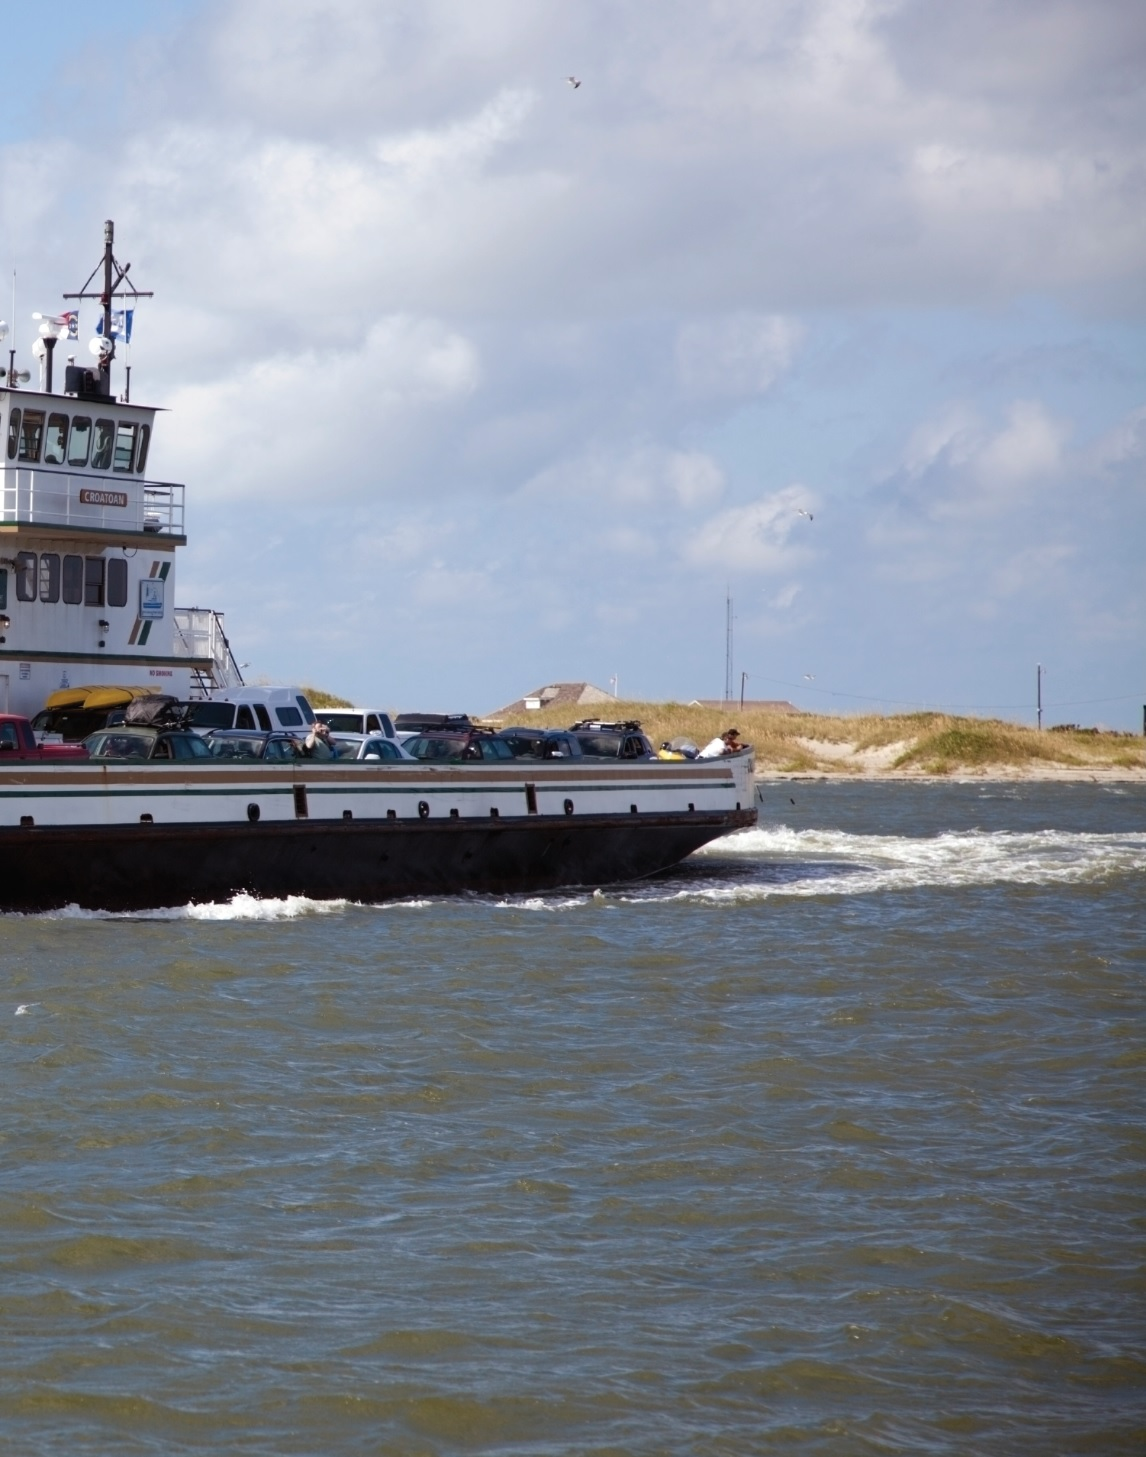 Enjoy The Daufuskie Island Ferry